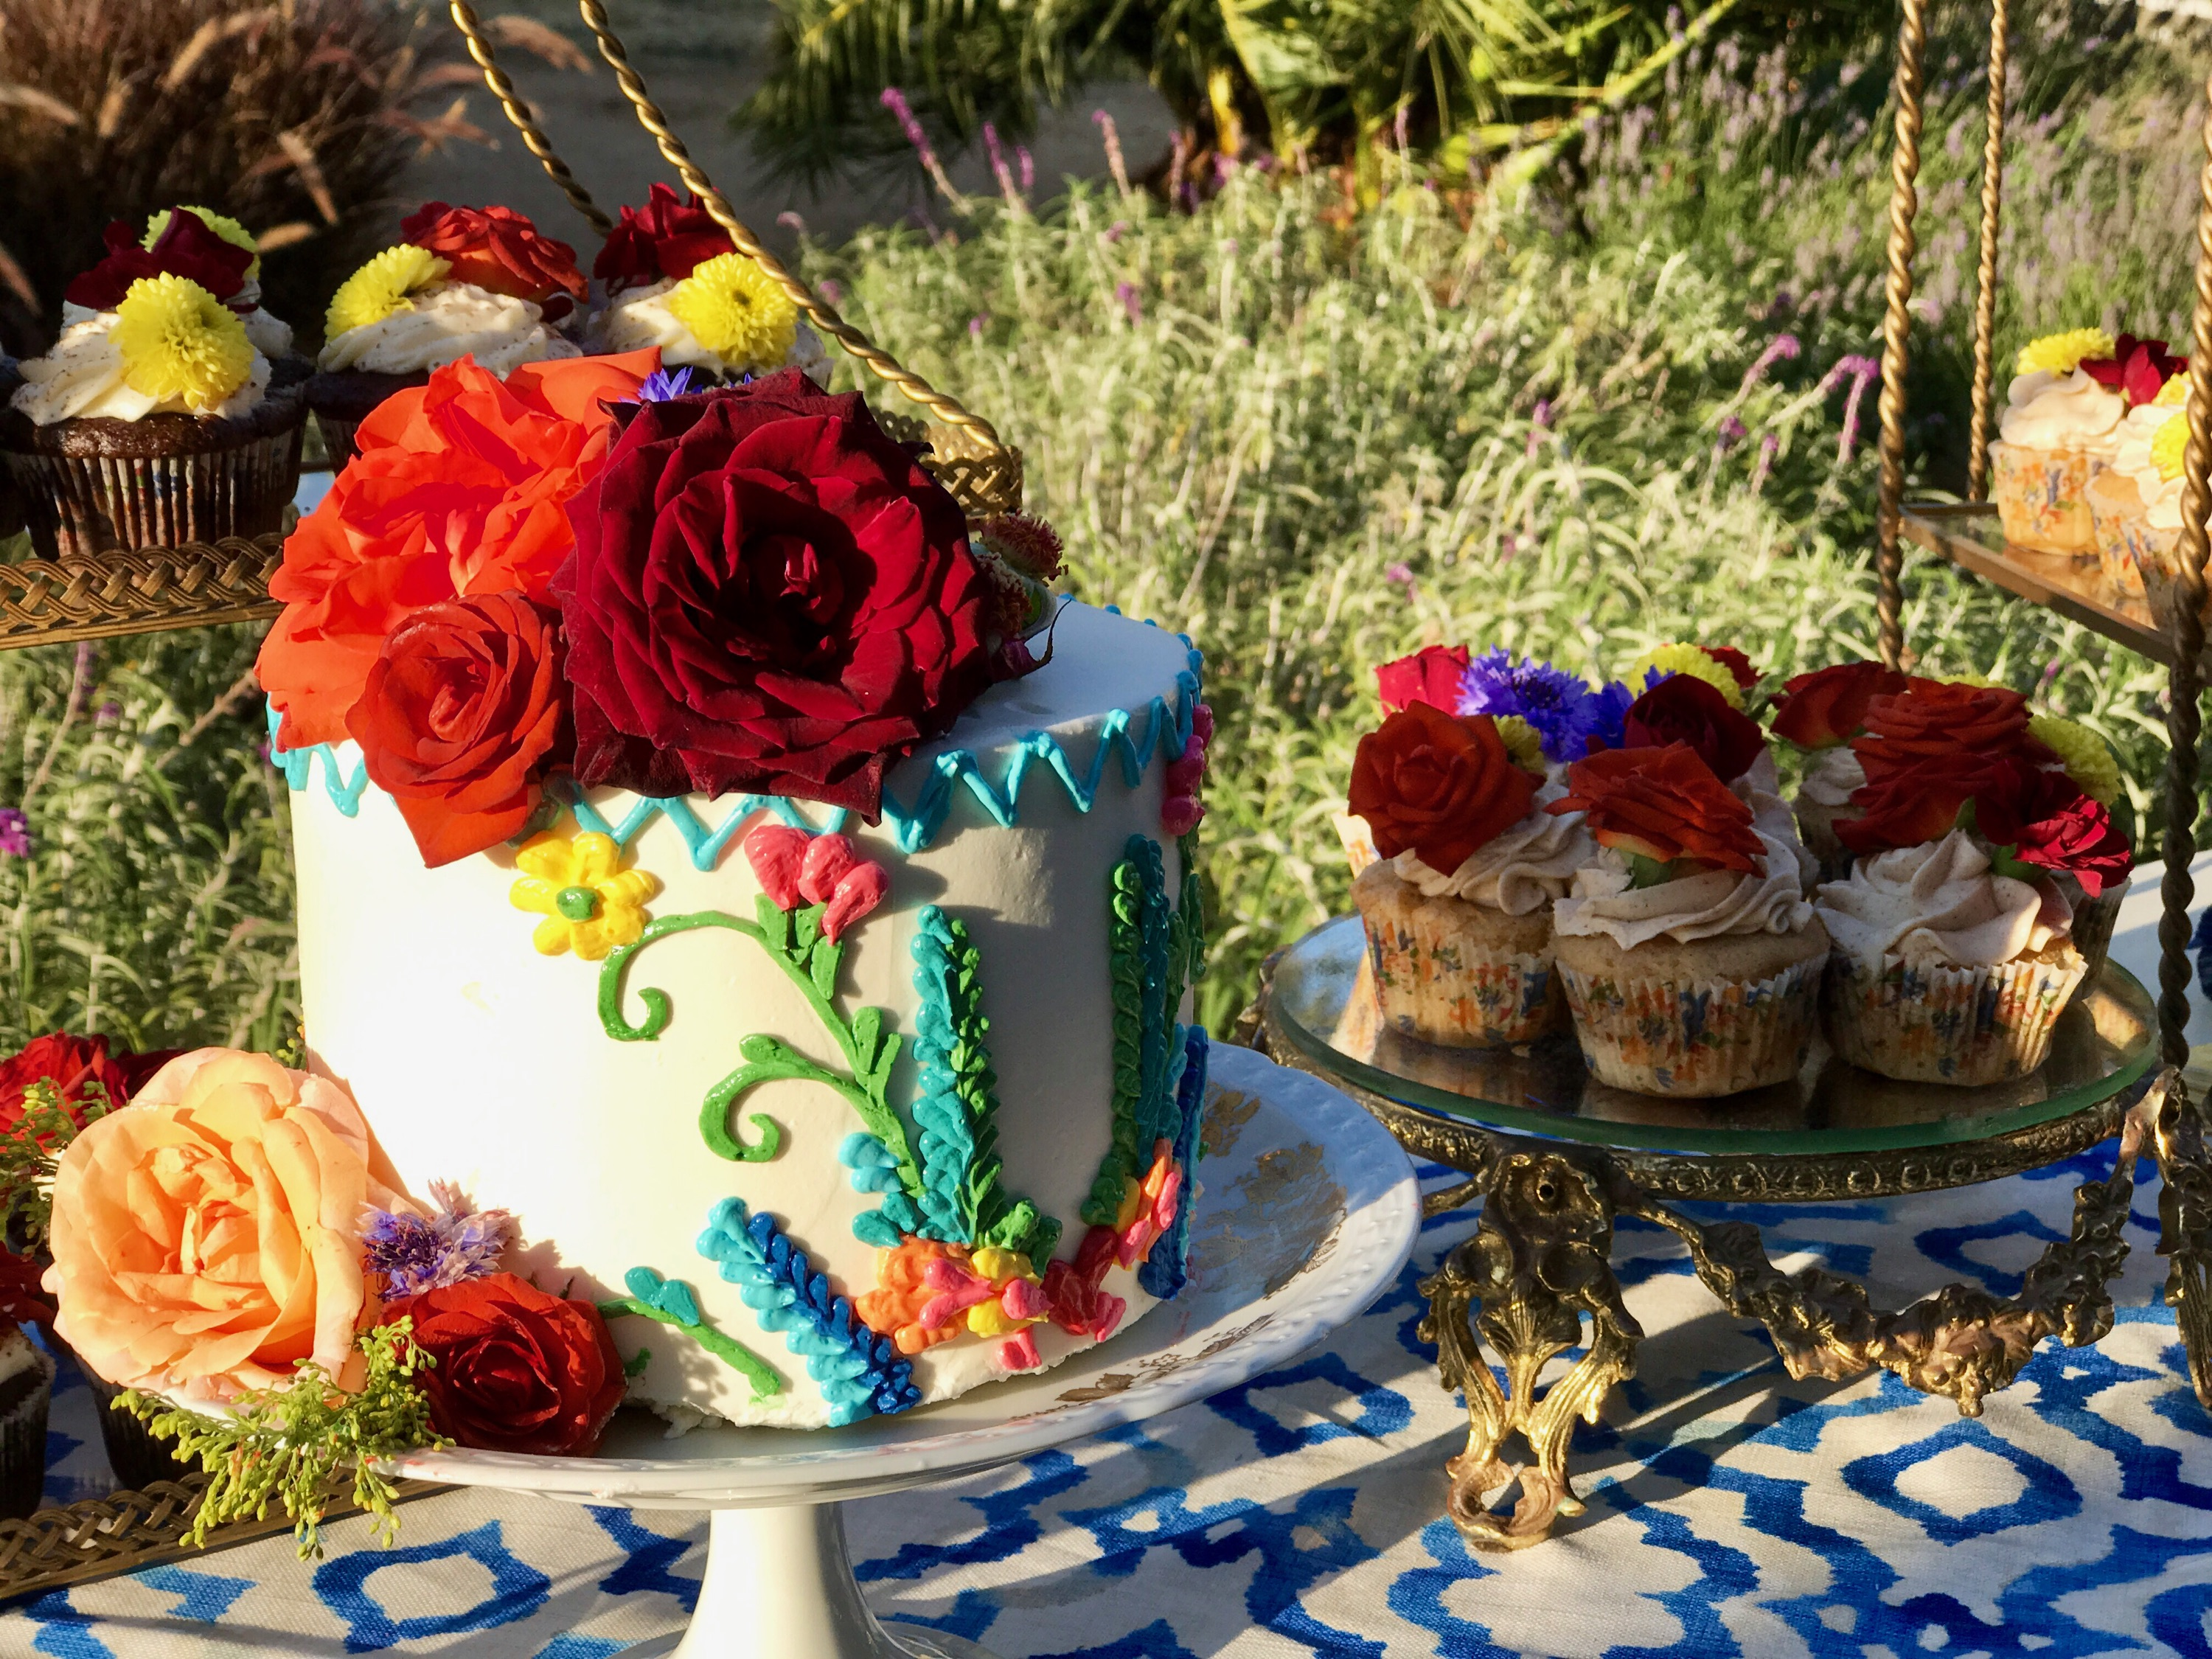 Colorful cake and cupcakes